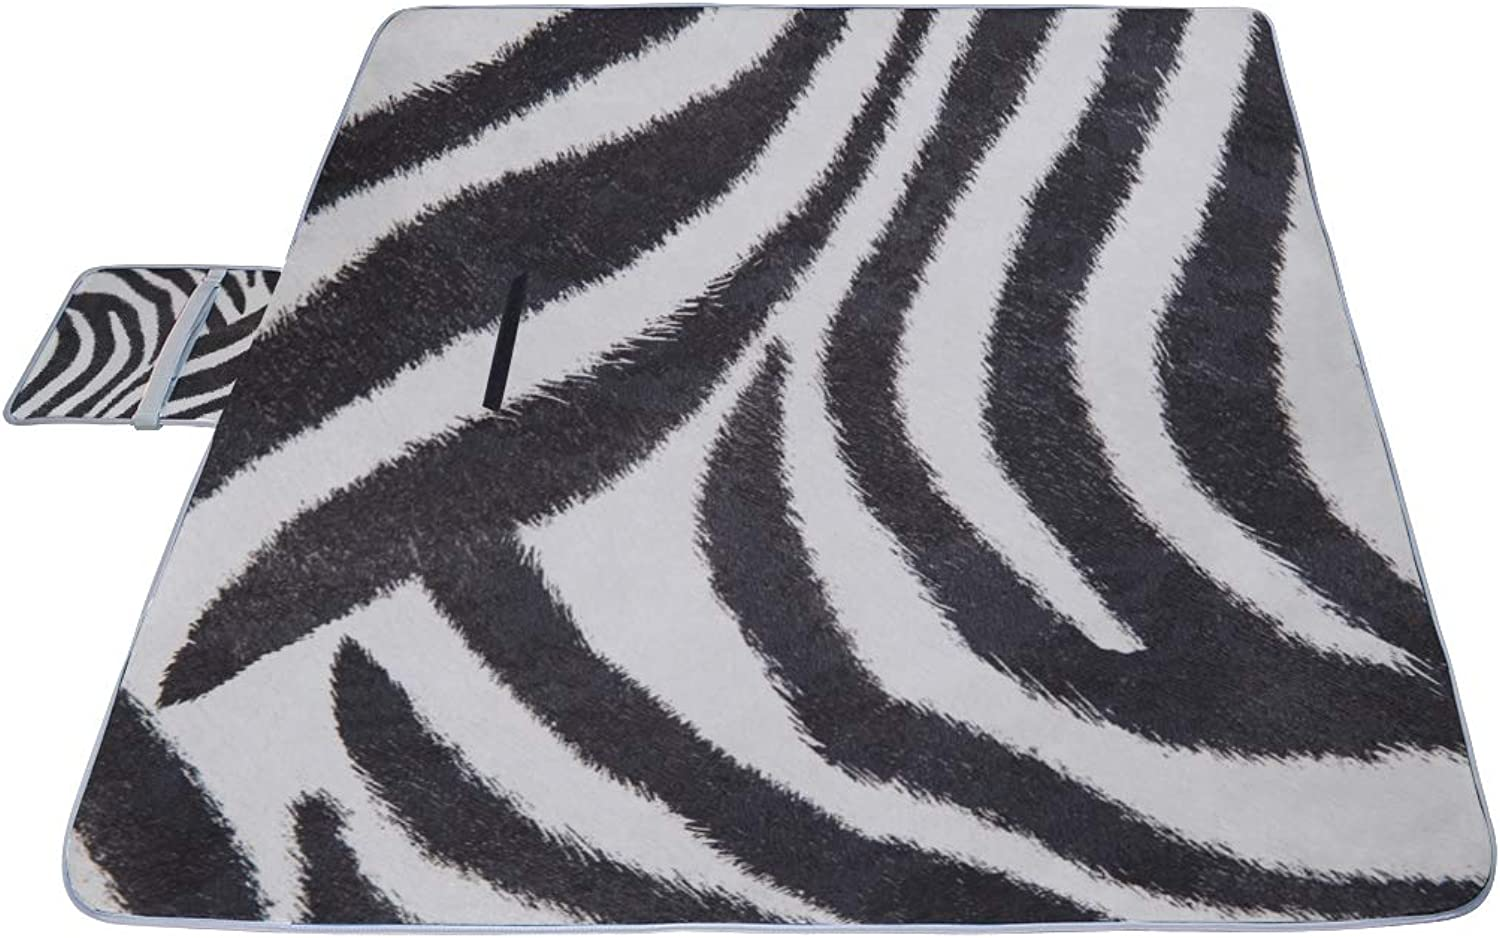 Zebra Black and White Stripes Picnic Mat 57''(144cm)x79''(200cm)Picnic Blanket Beach Mat with Waterproof for Kids Picnic Beaches and Outdoor Folded Bag